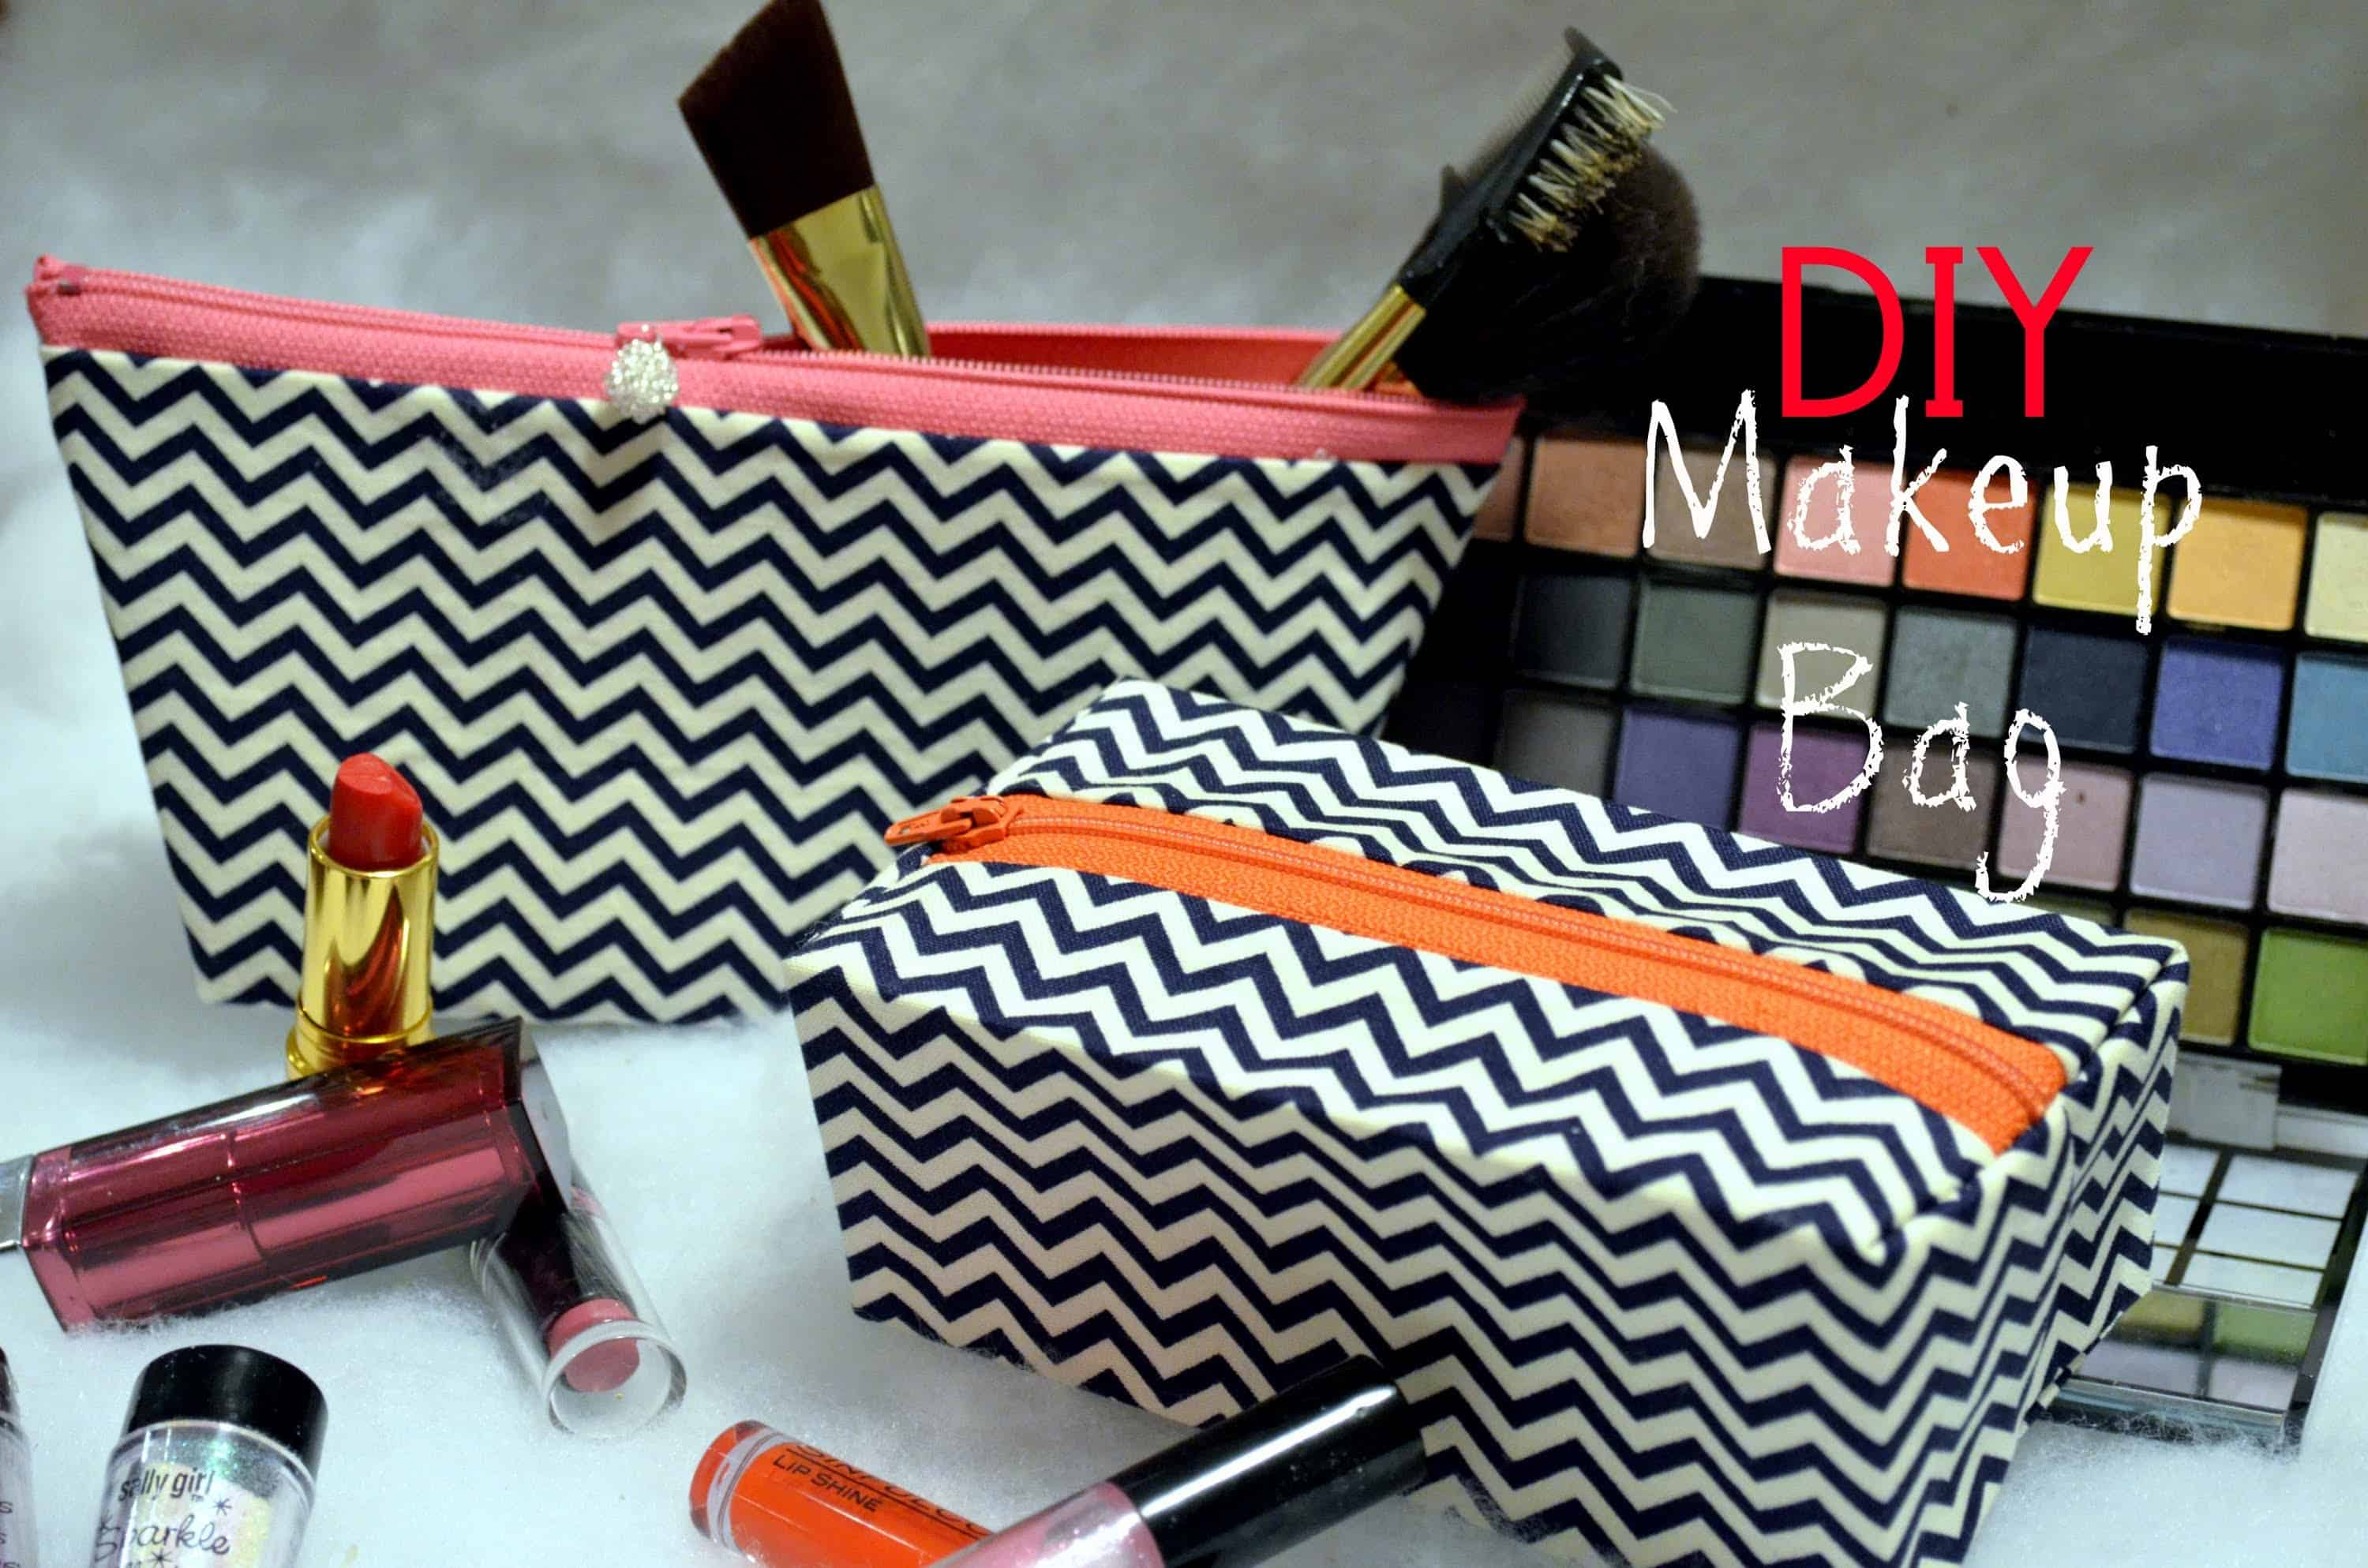 Matching makeup bag set with contrasting zippers